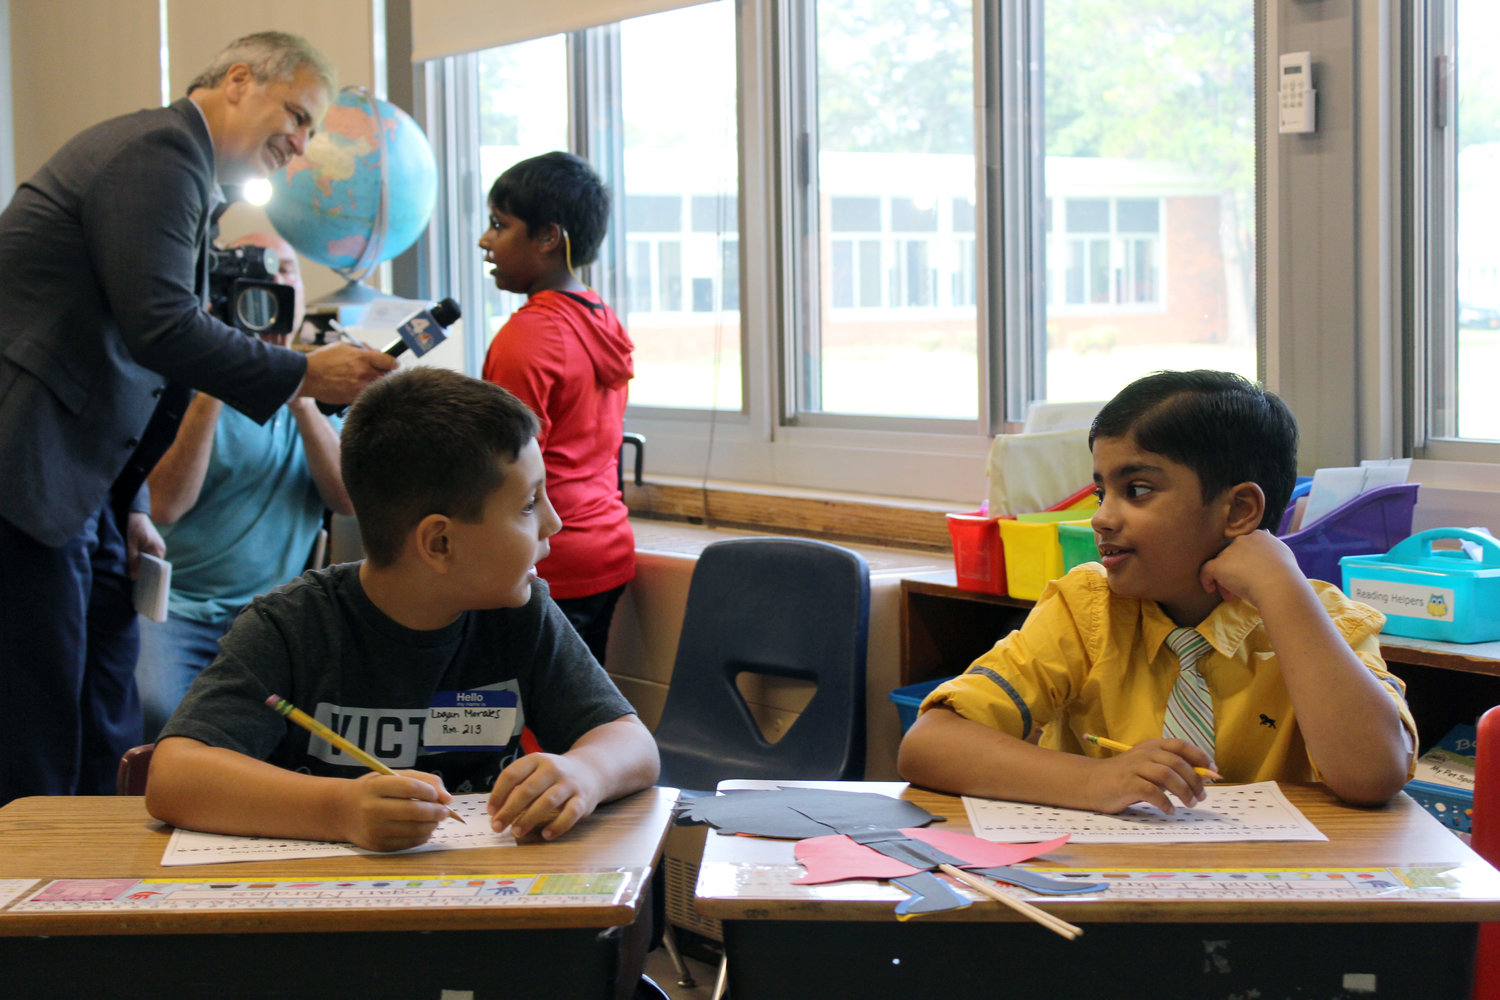 Mahdi, right, and his friend Logan Morales settled into their new desks in Allison Brafman's fourth-grade class.